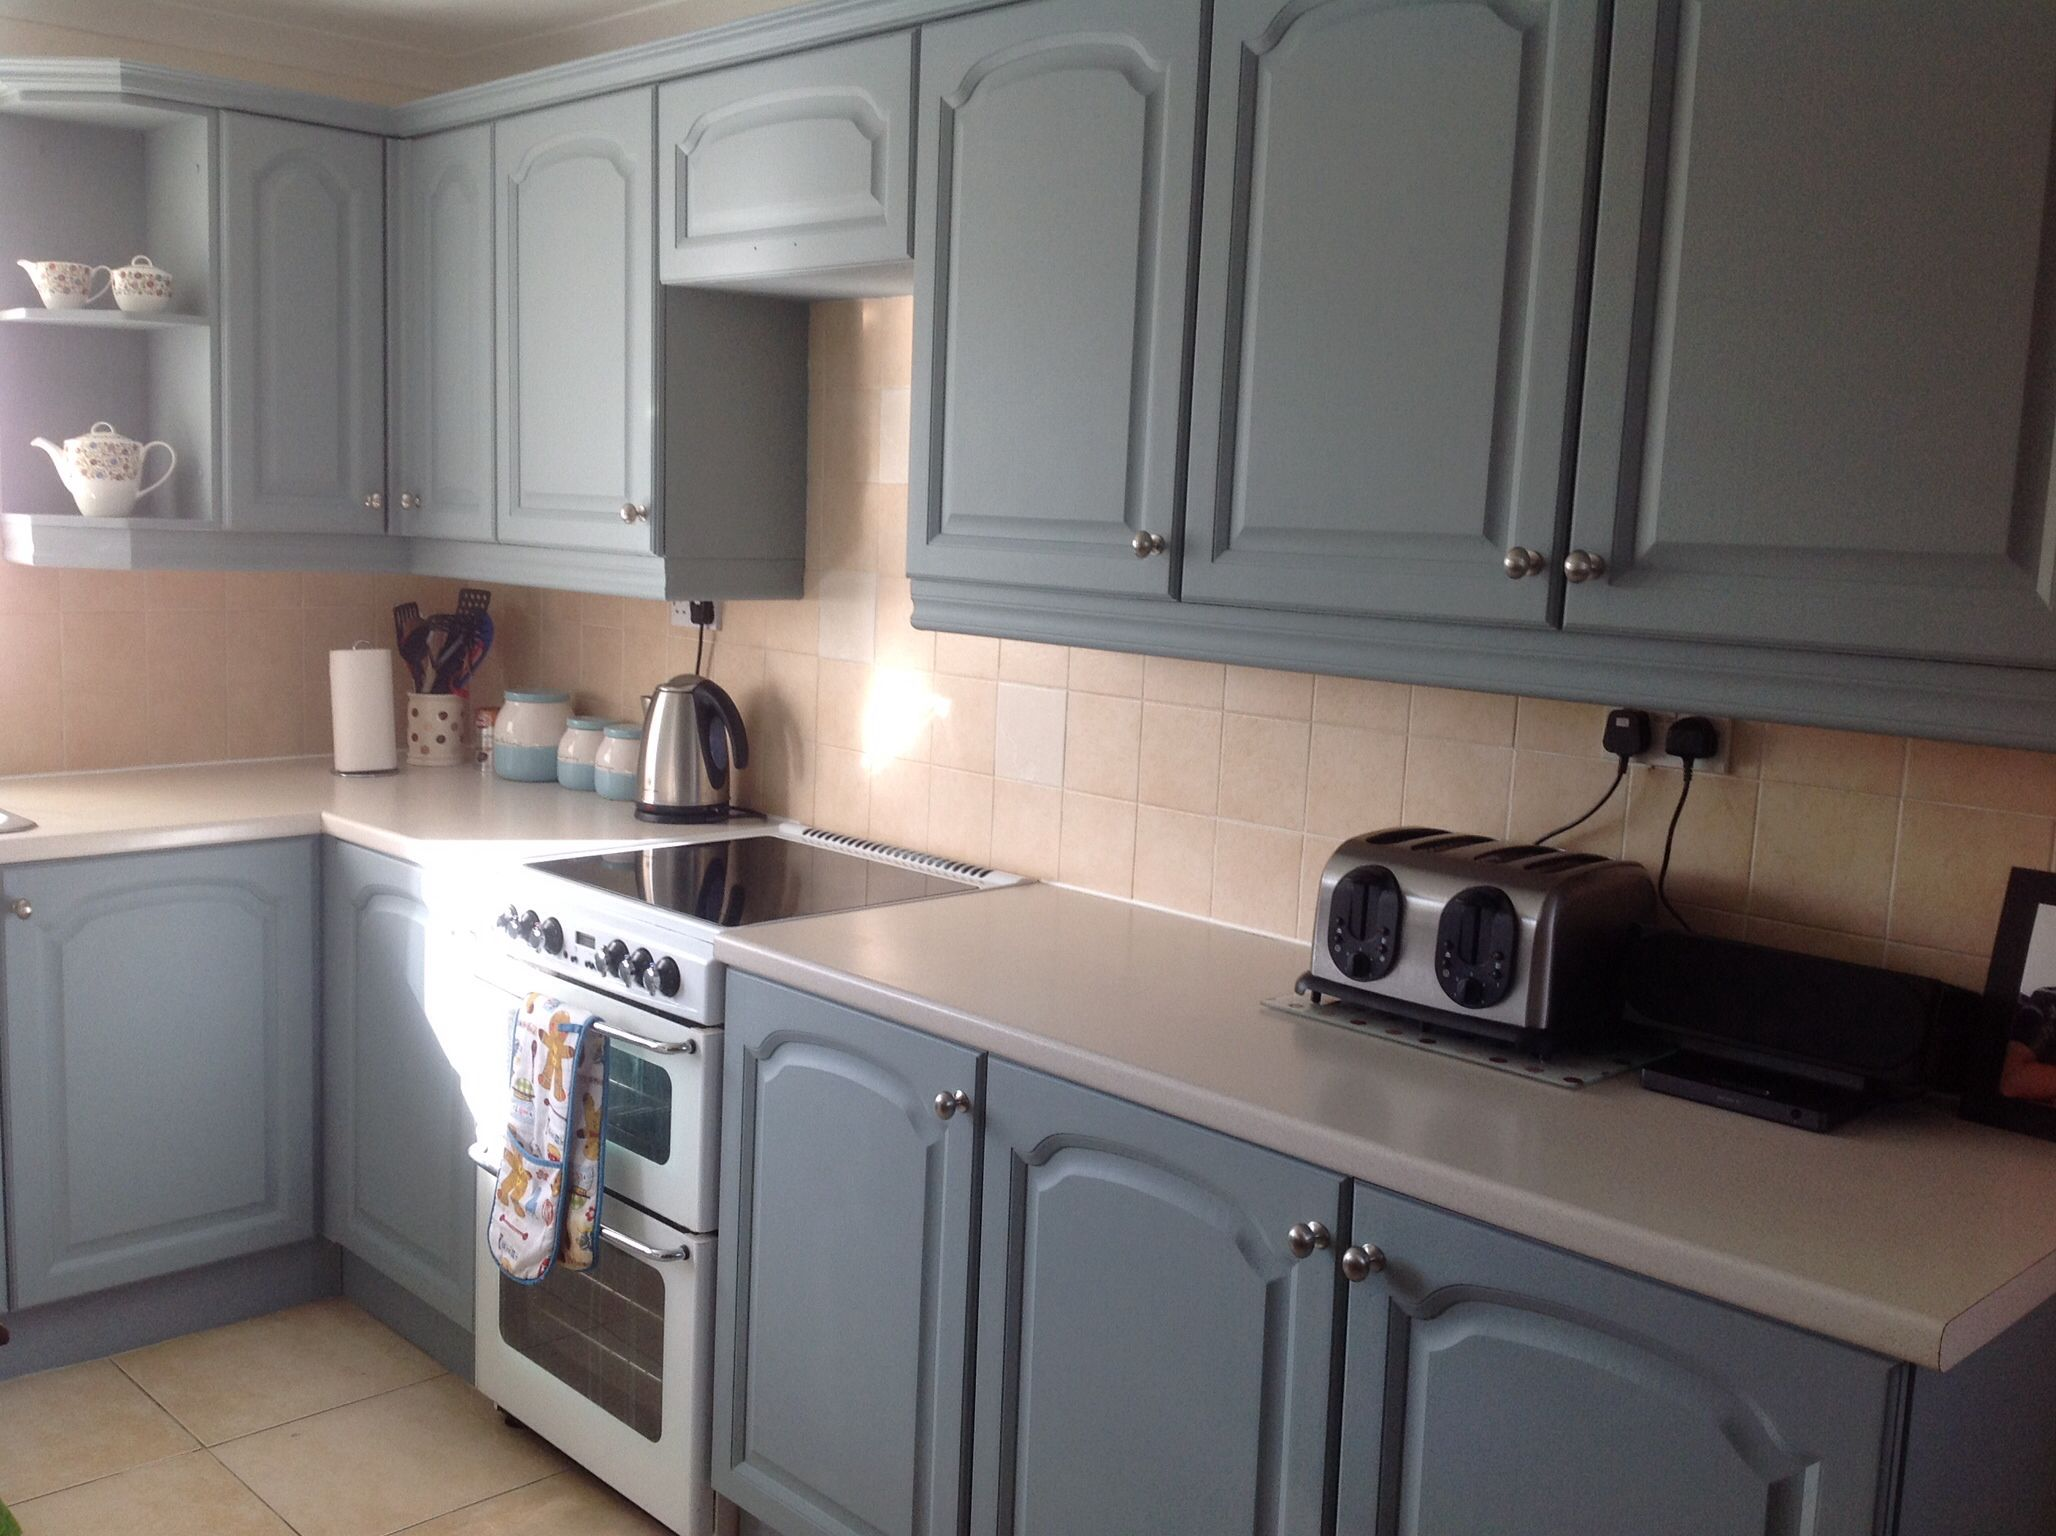 Paintedkitchen Cupboards With Autentico Paint In Scandinavian Blue